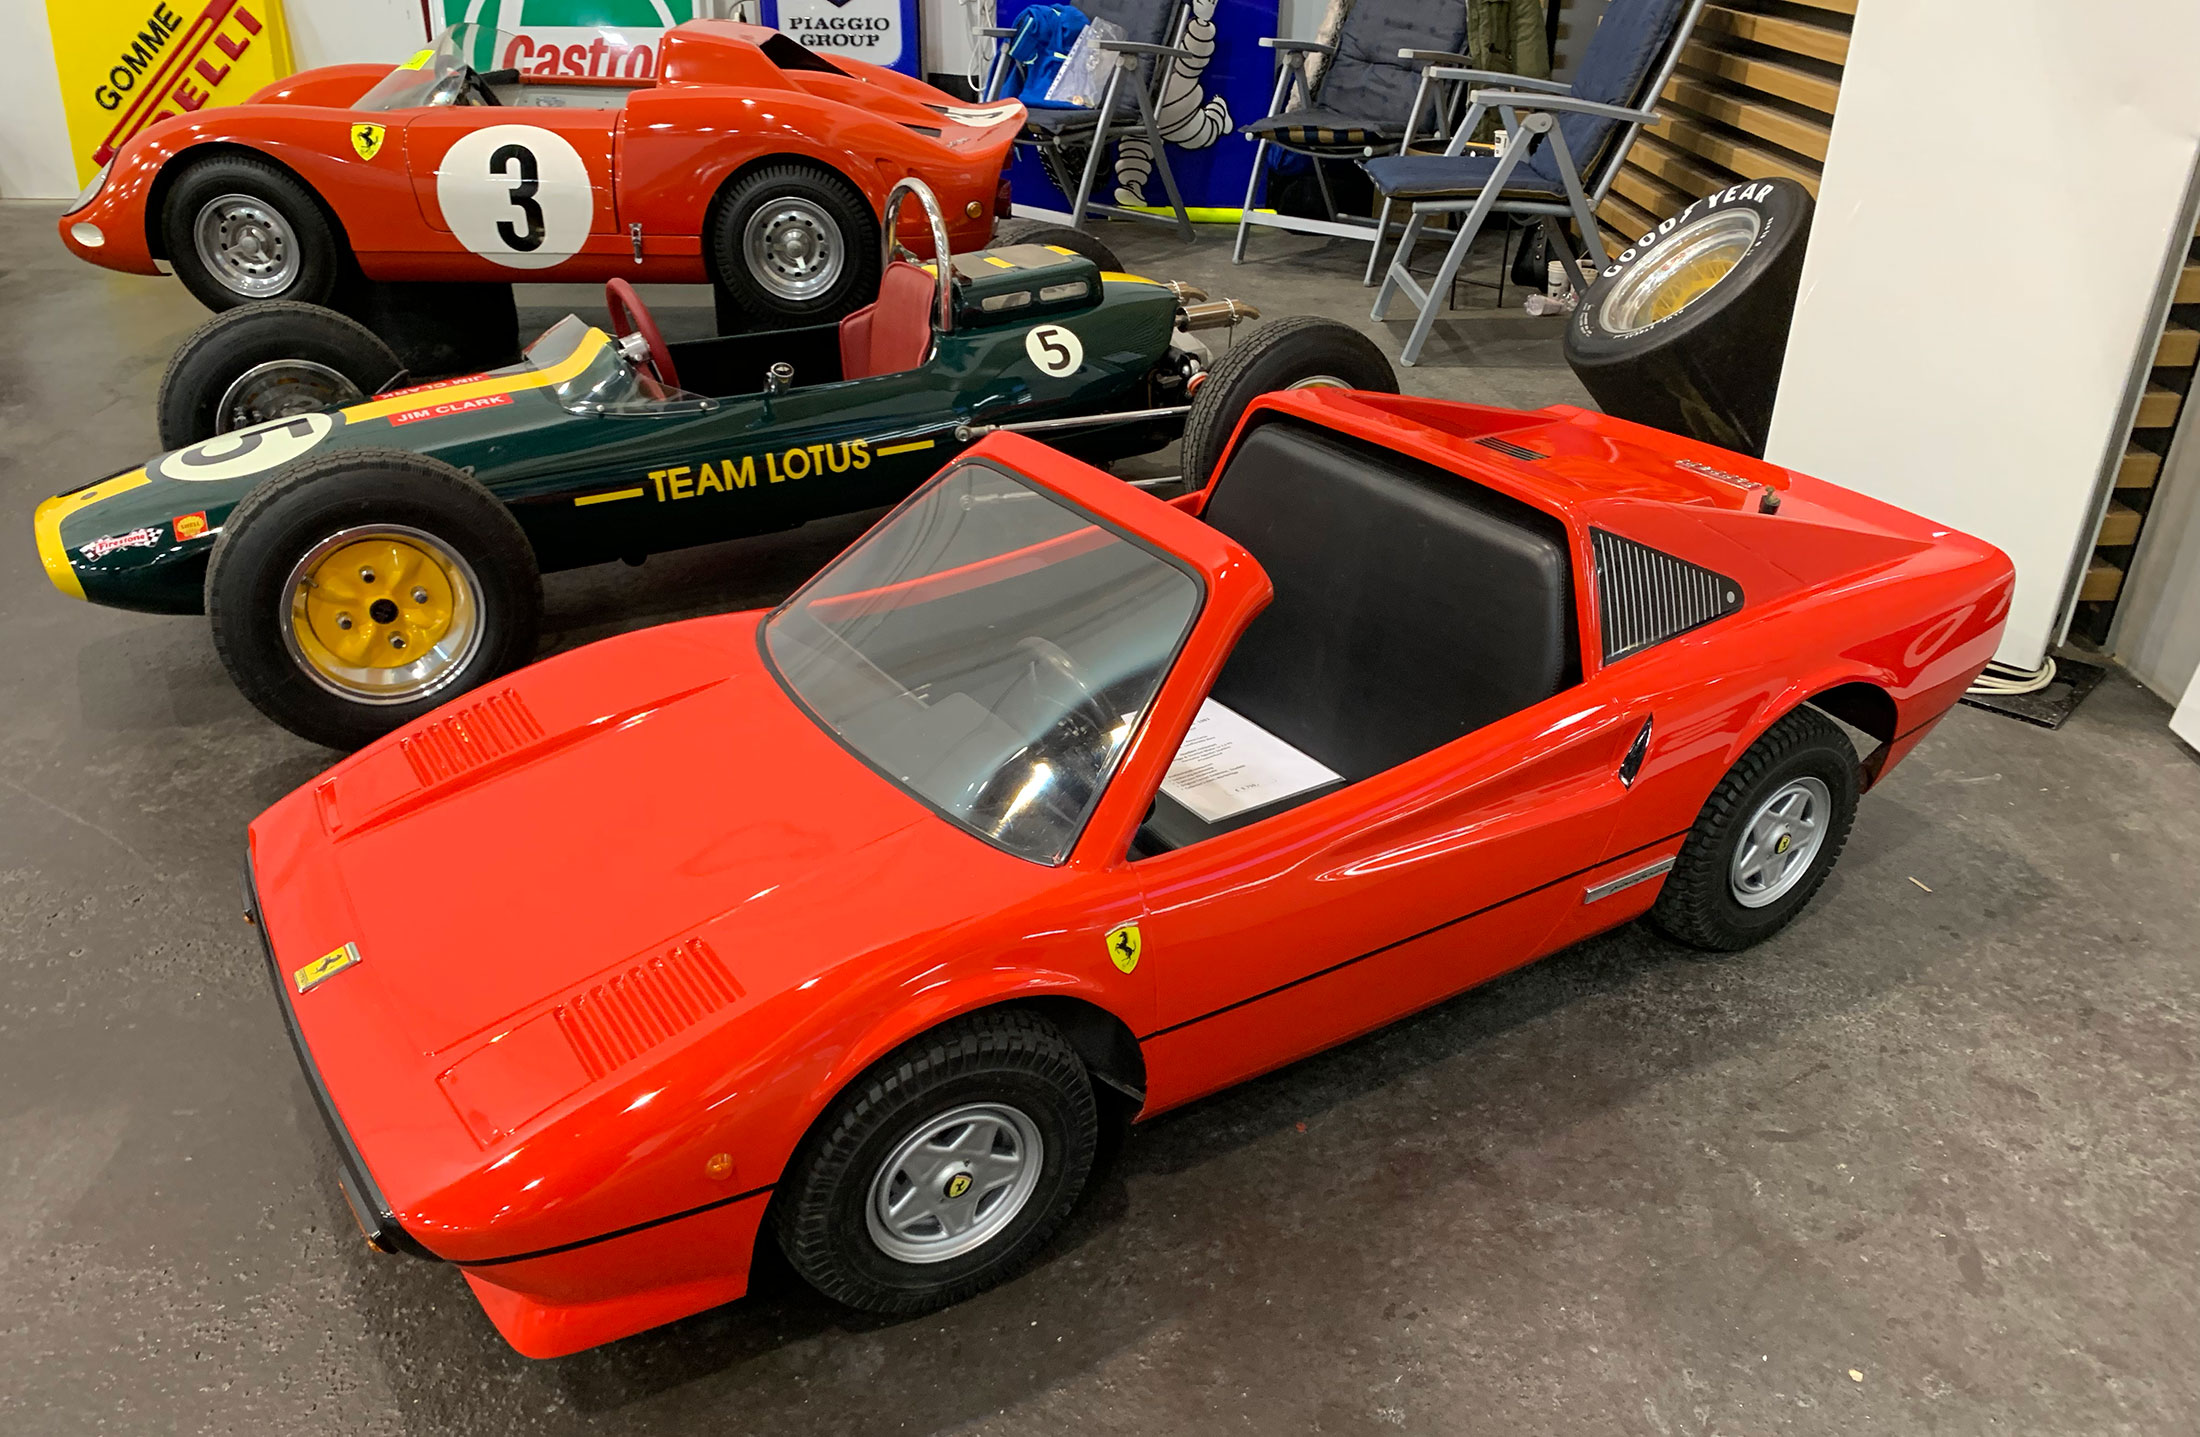 There was a small section with kids cars - nice little Ferrari 308/328 / Mini Magnum PI.